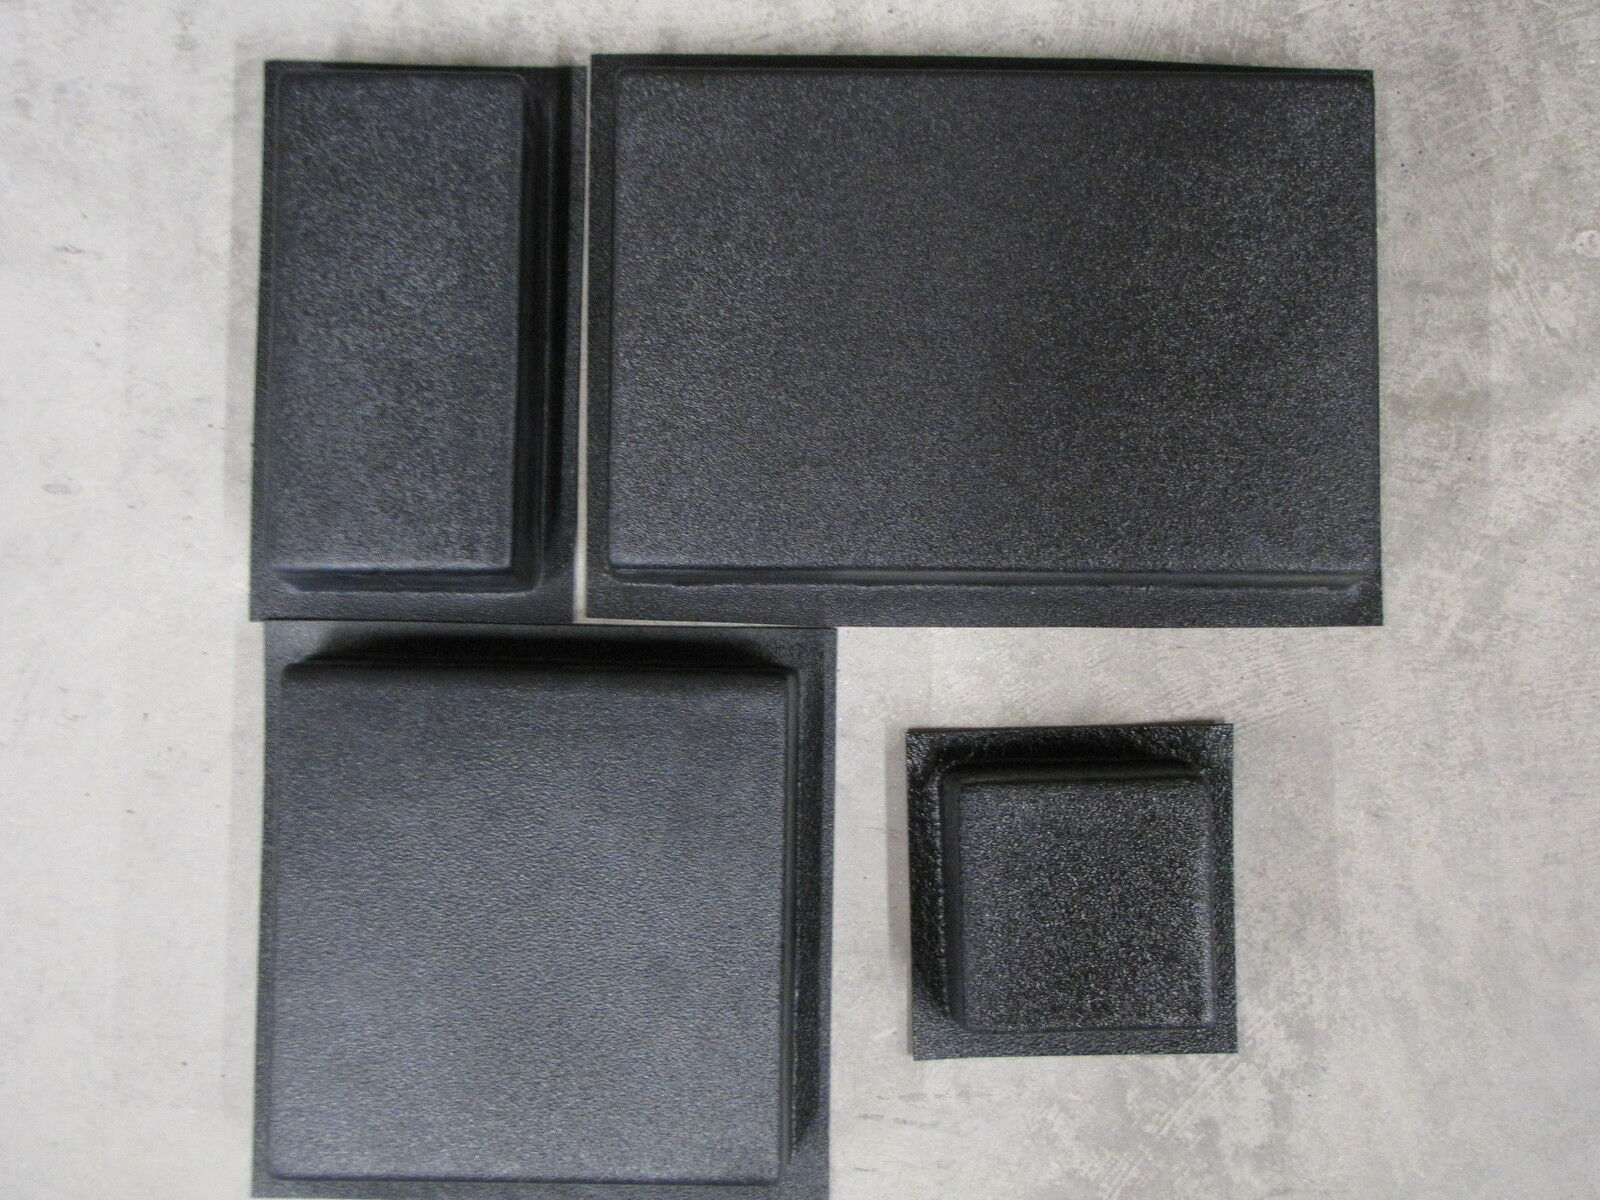 #4006K SUPPLY KIT w12 DRIVEWAY PAVER MOLDS MAKES 100s OPUS ROMANO PATTERN PAVERS